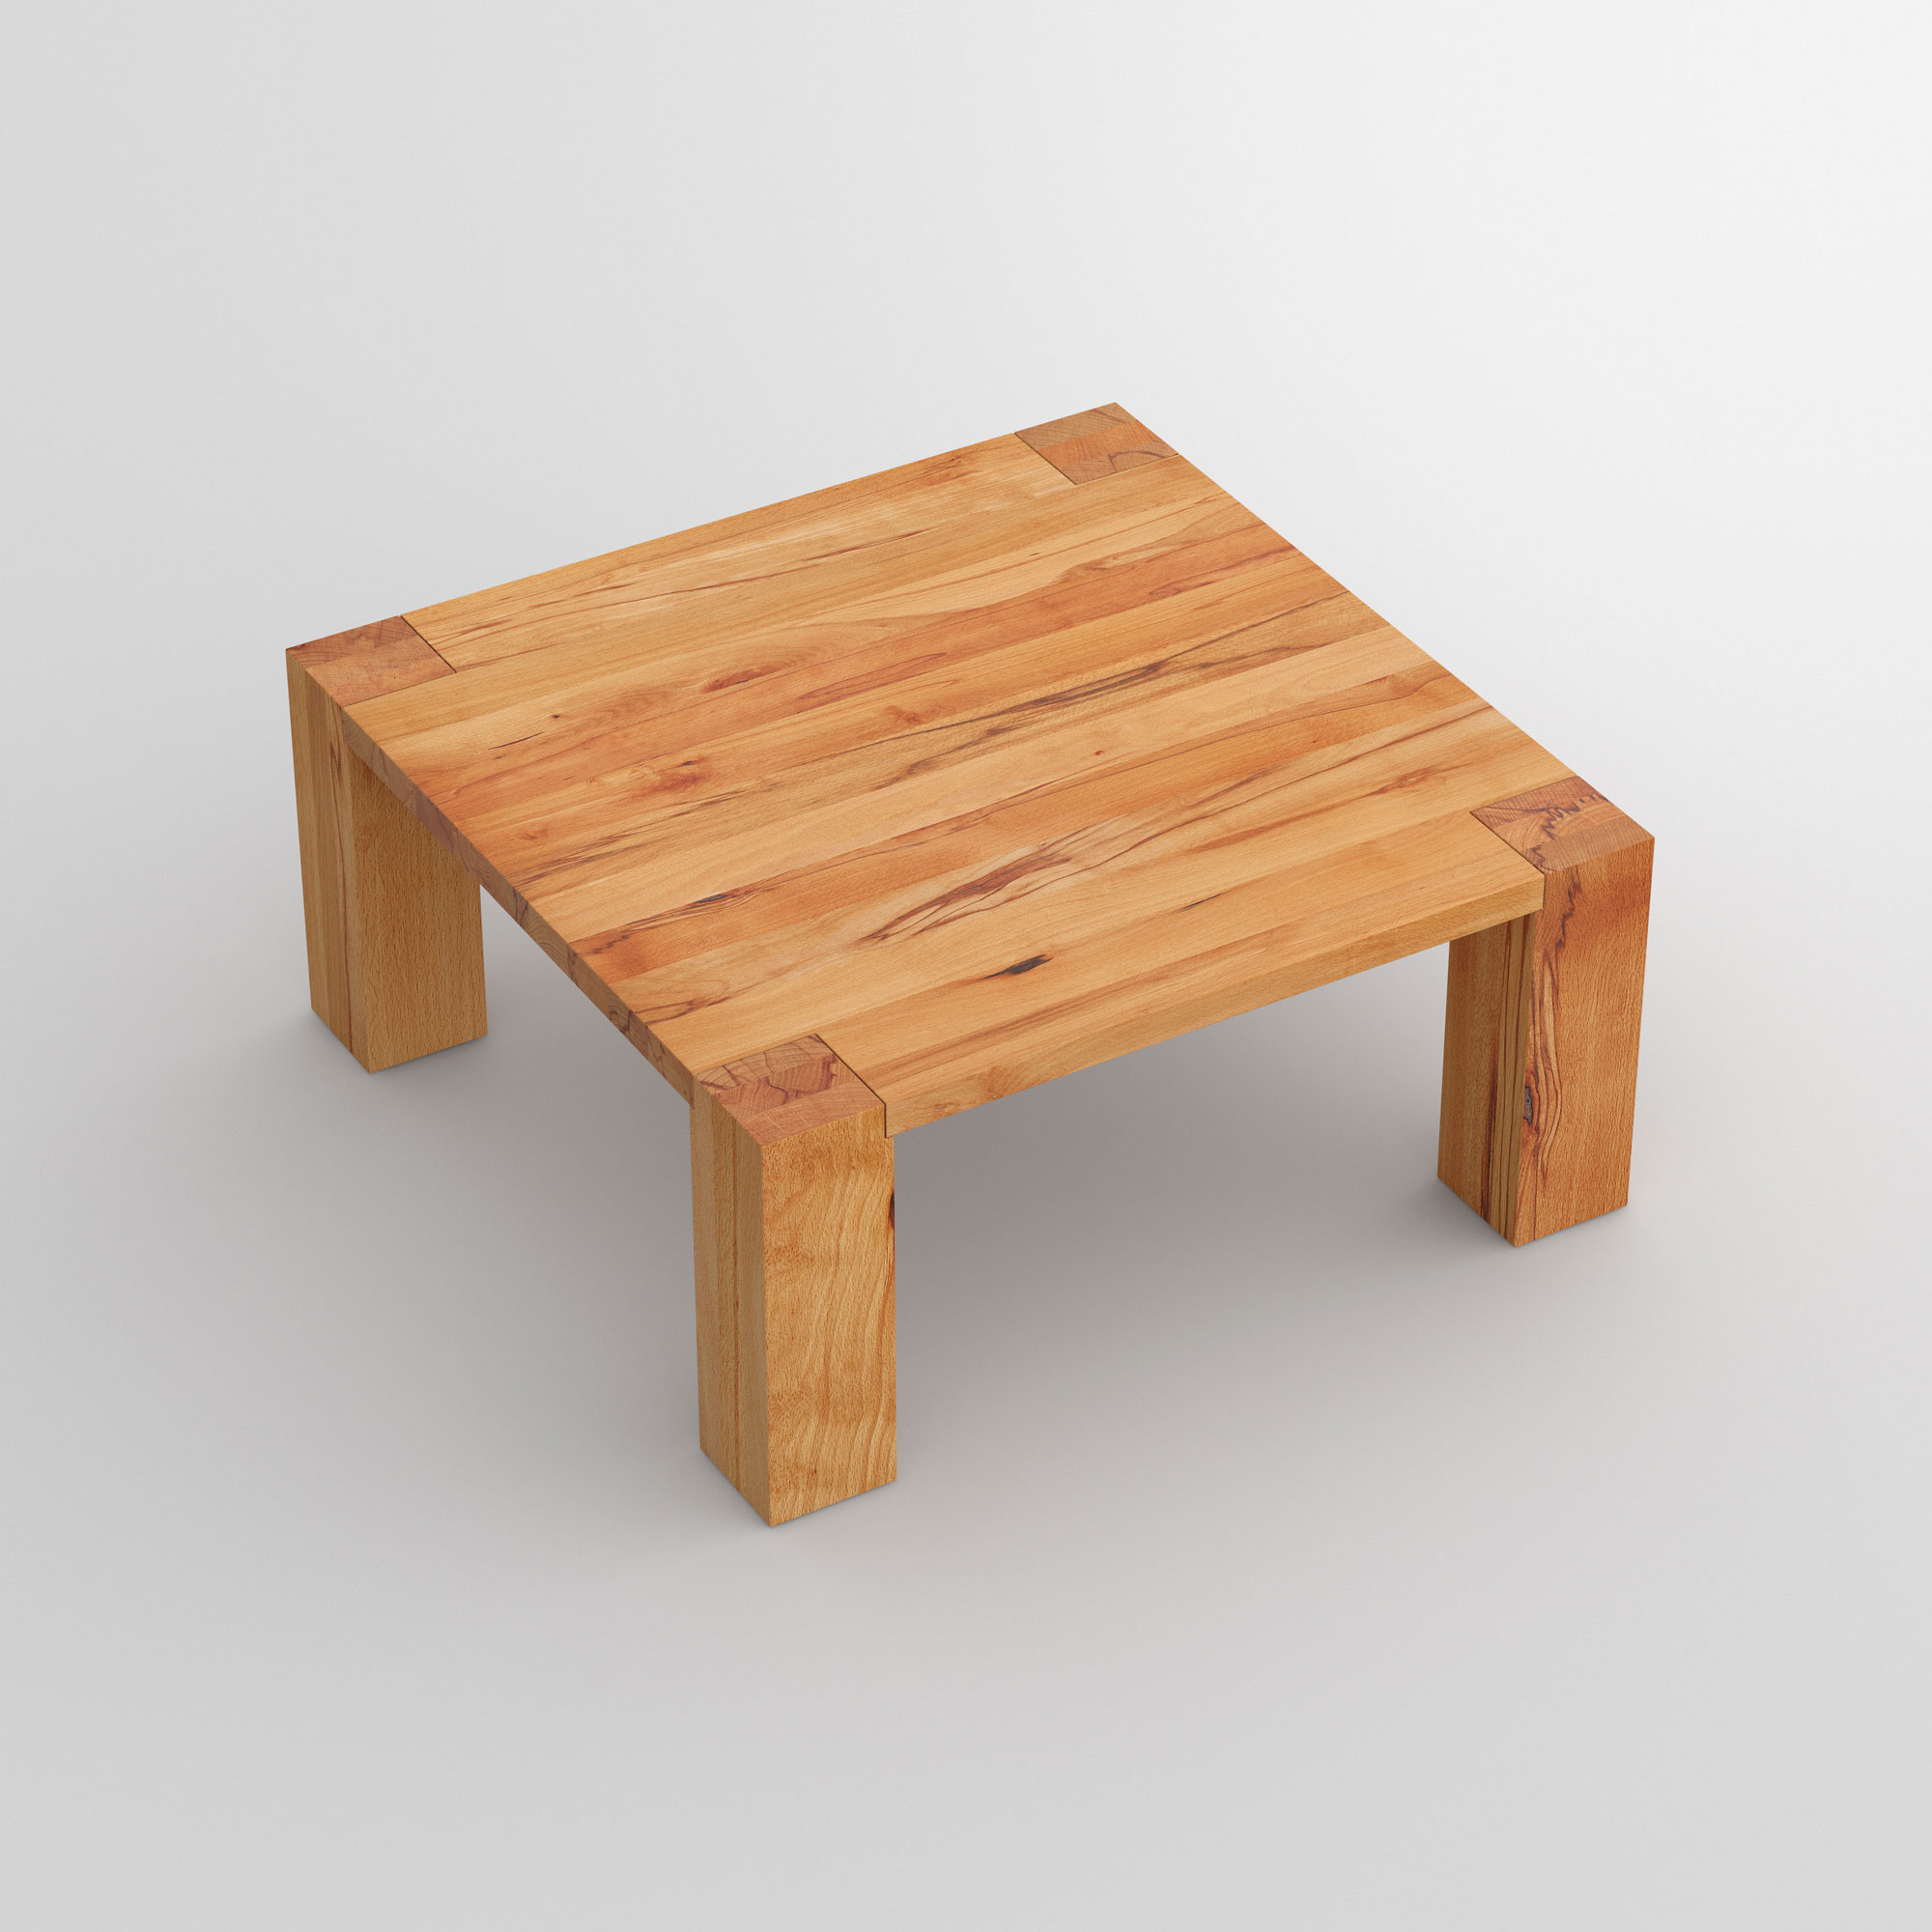 Solid Wood Coffee Table TAURUS 4 B14X14 cam3 custom made in solid wood by vitamin design